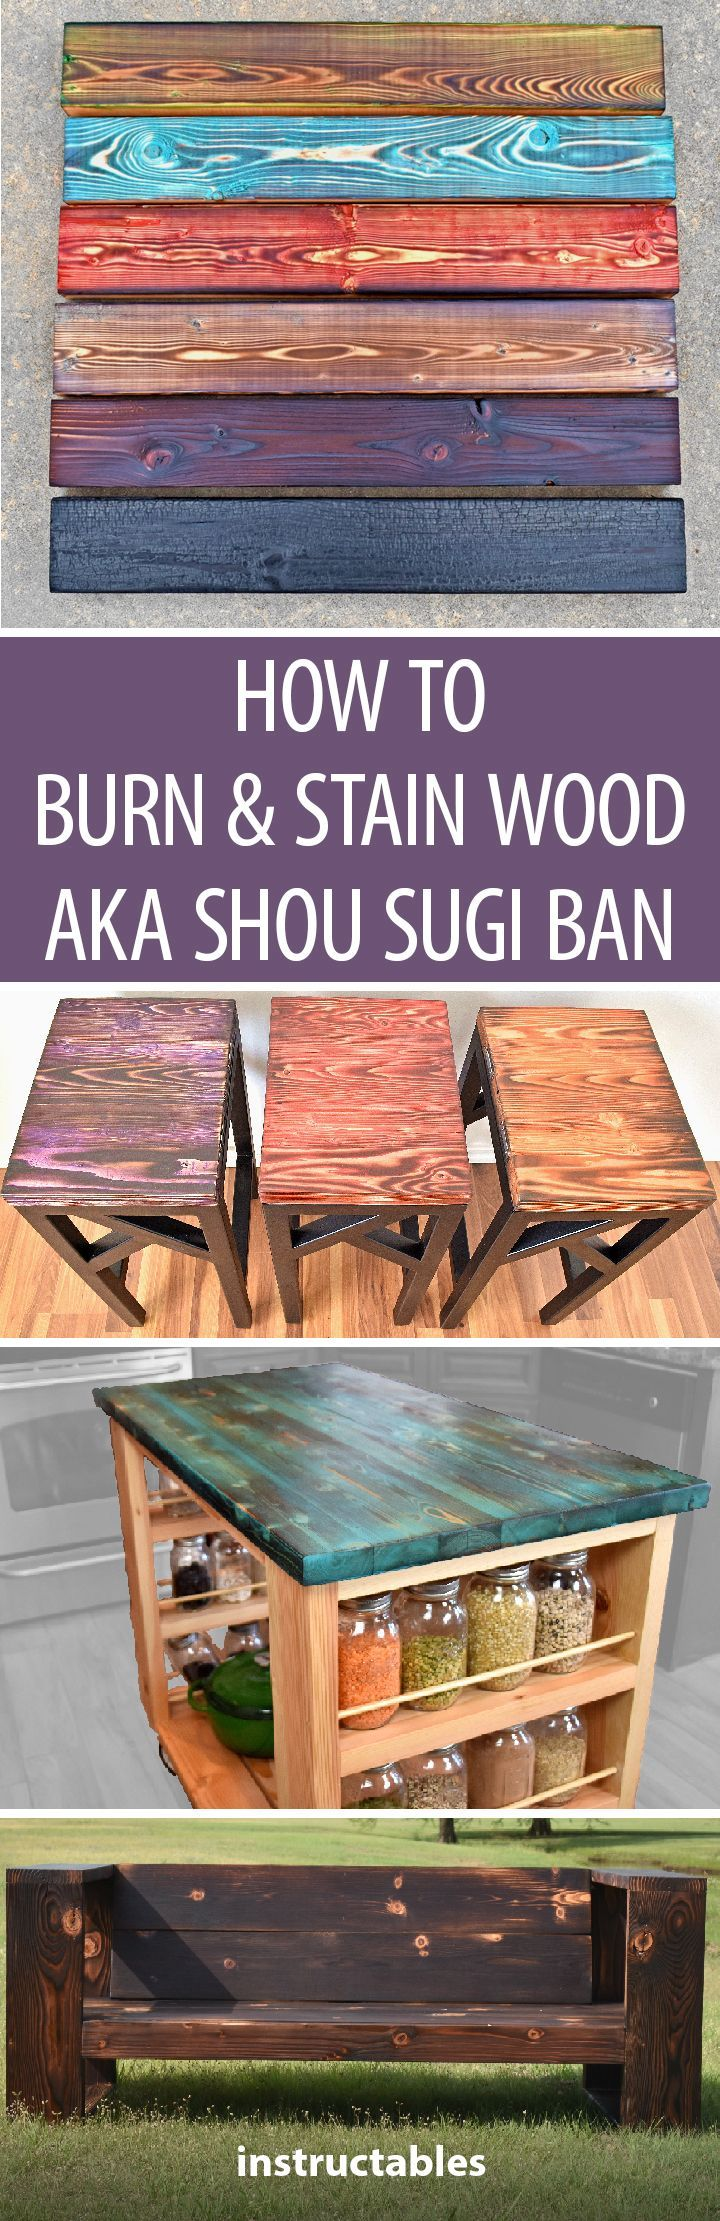 Photo of How to Burn & Stain Wood Aka Shou Sugi Ban